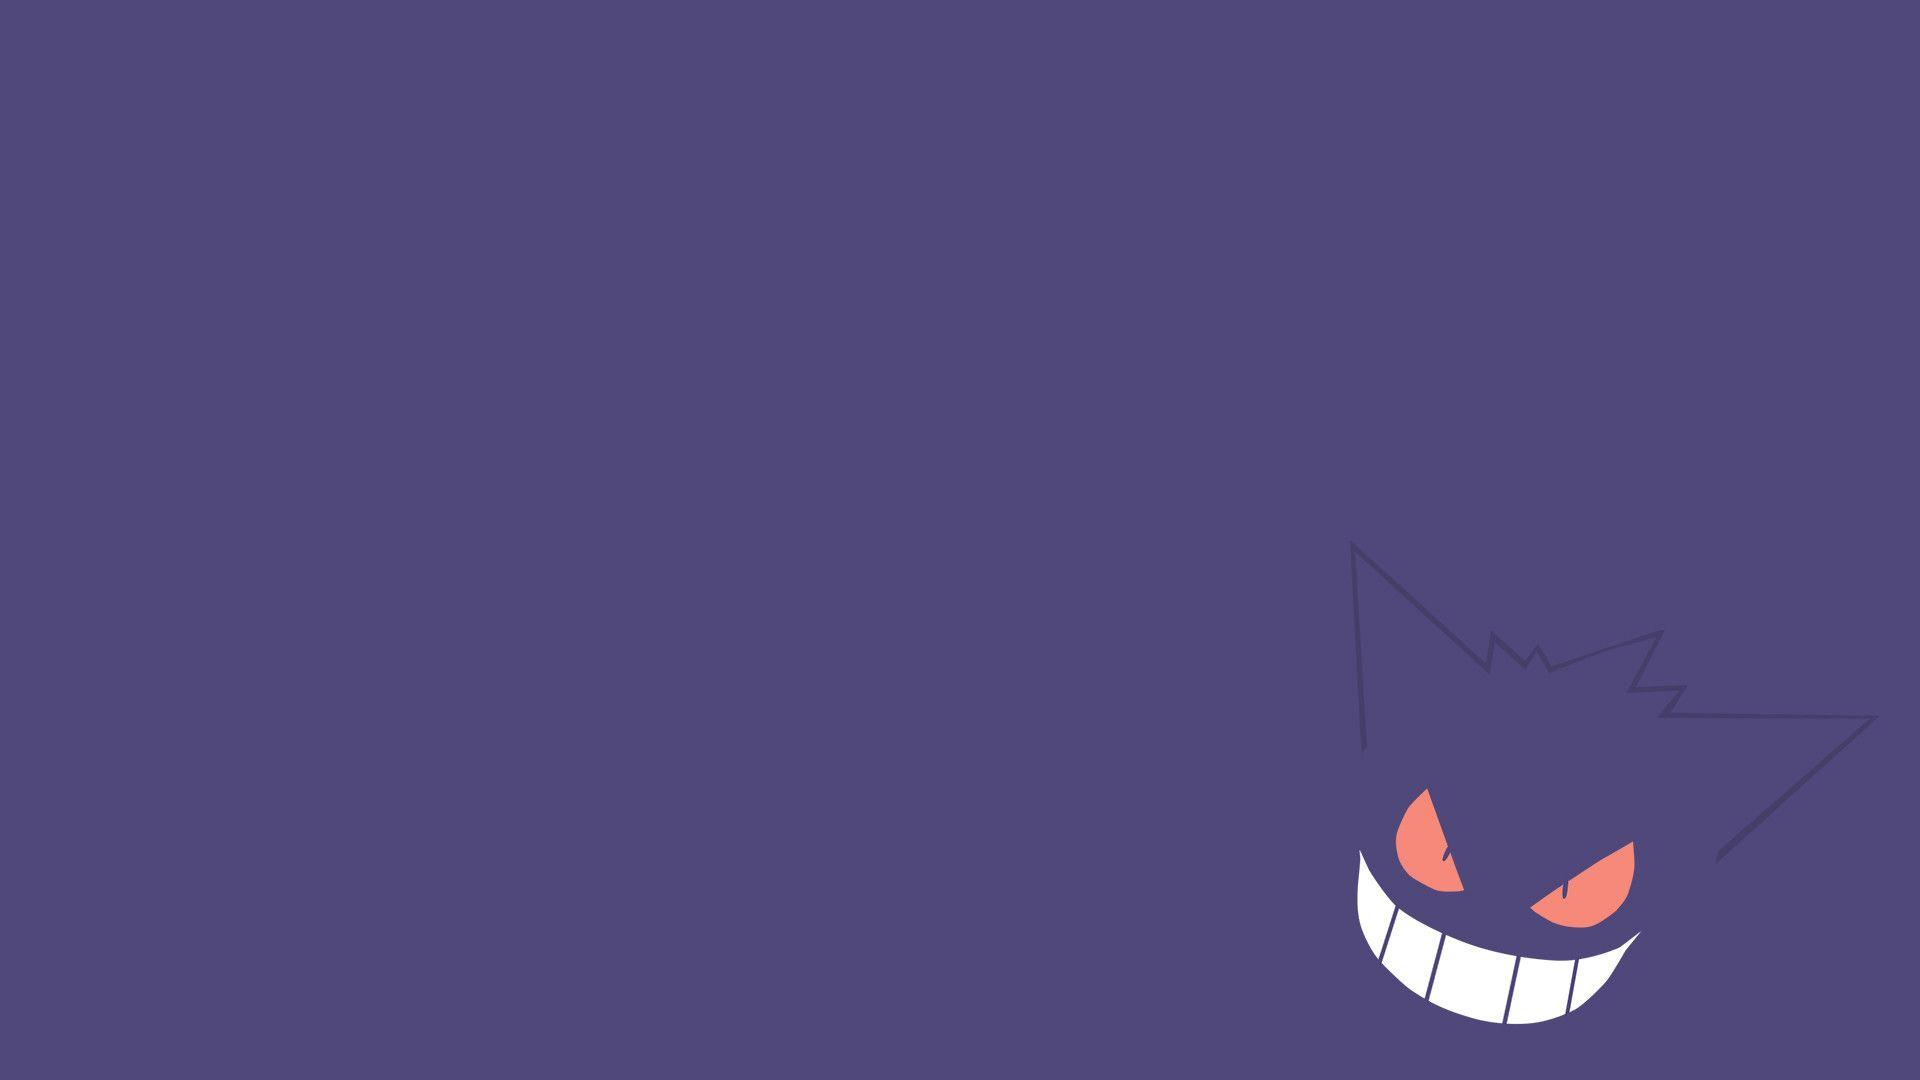 Gengar Wallpaper HD (67+ images)